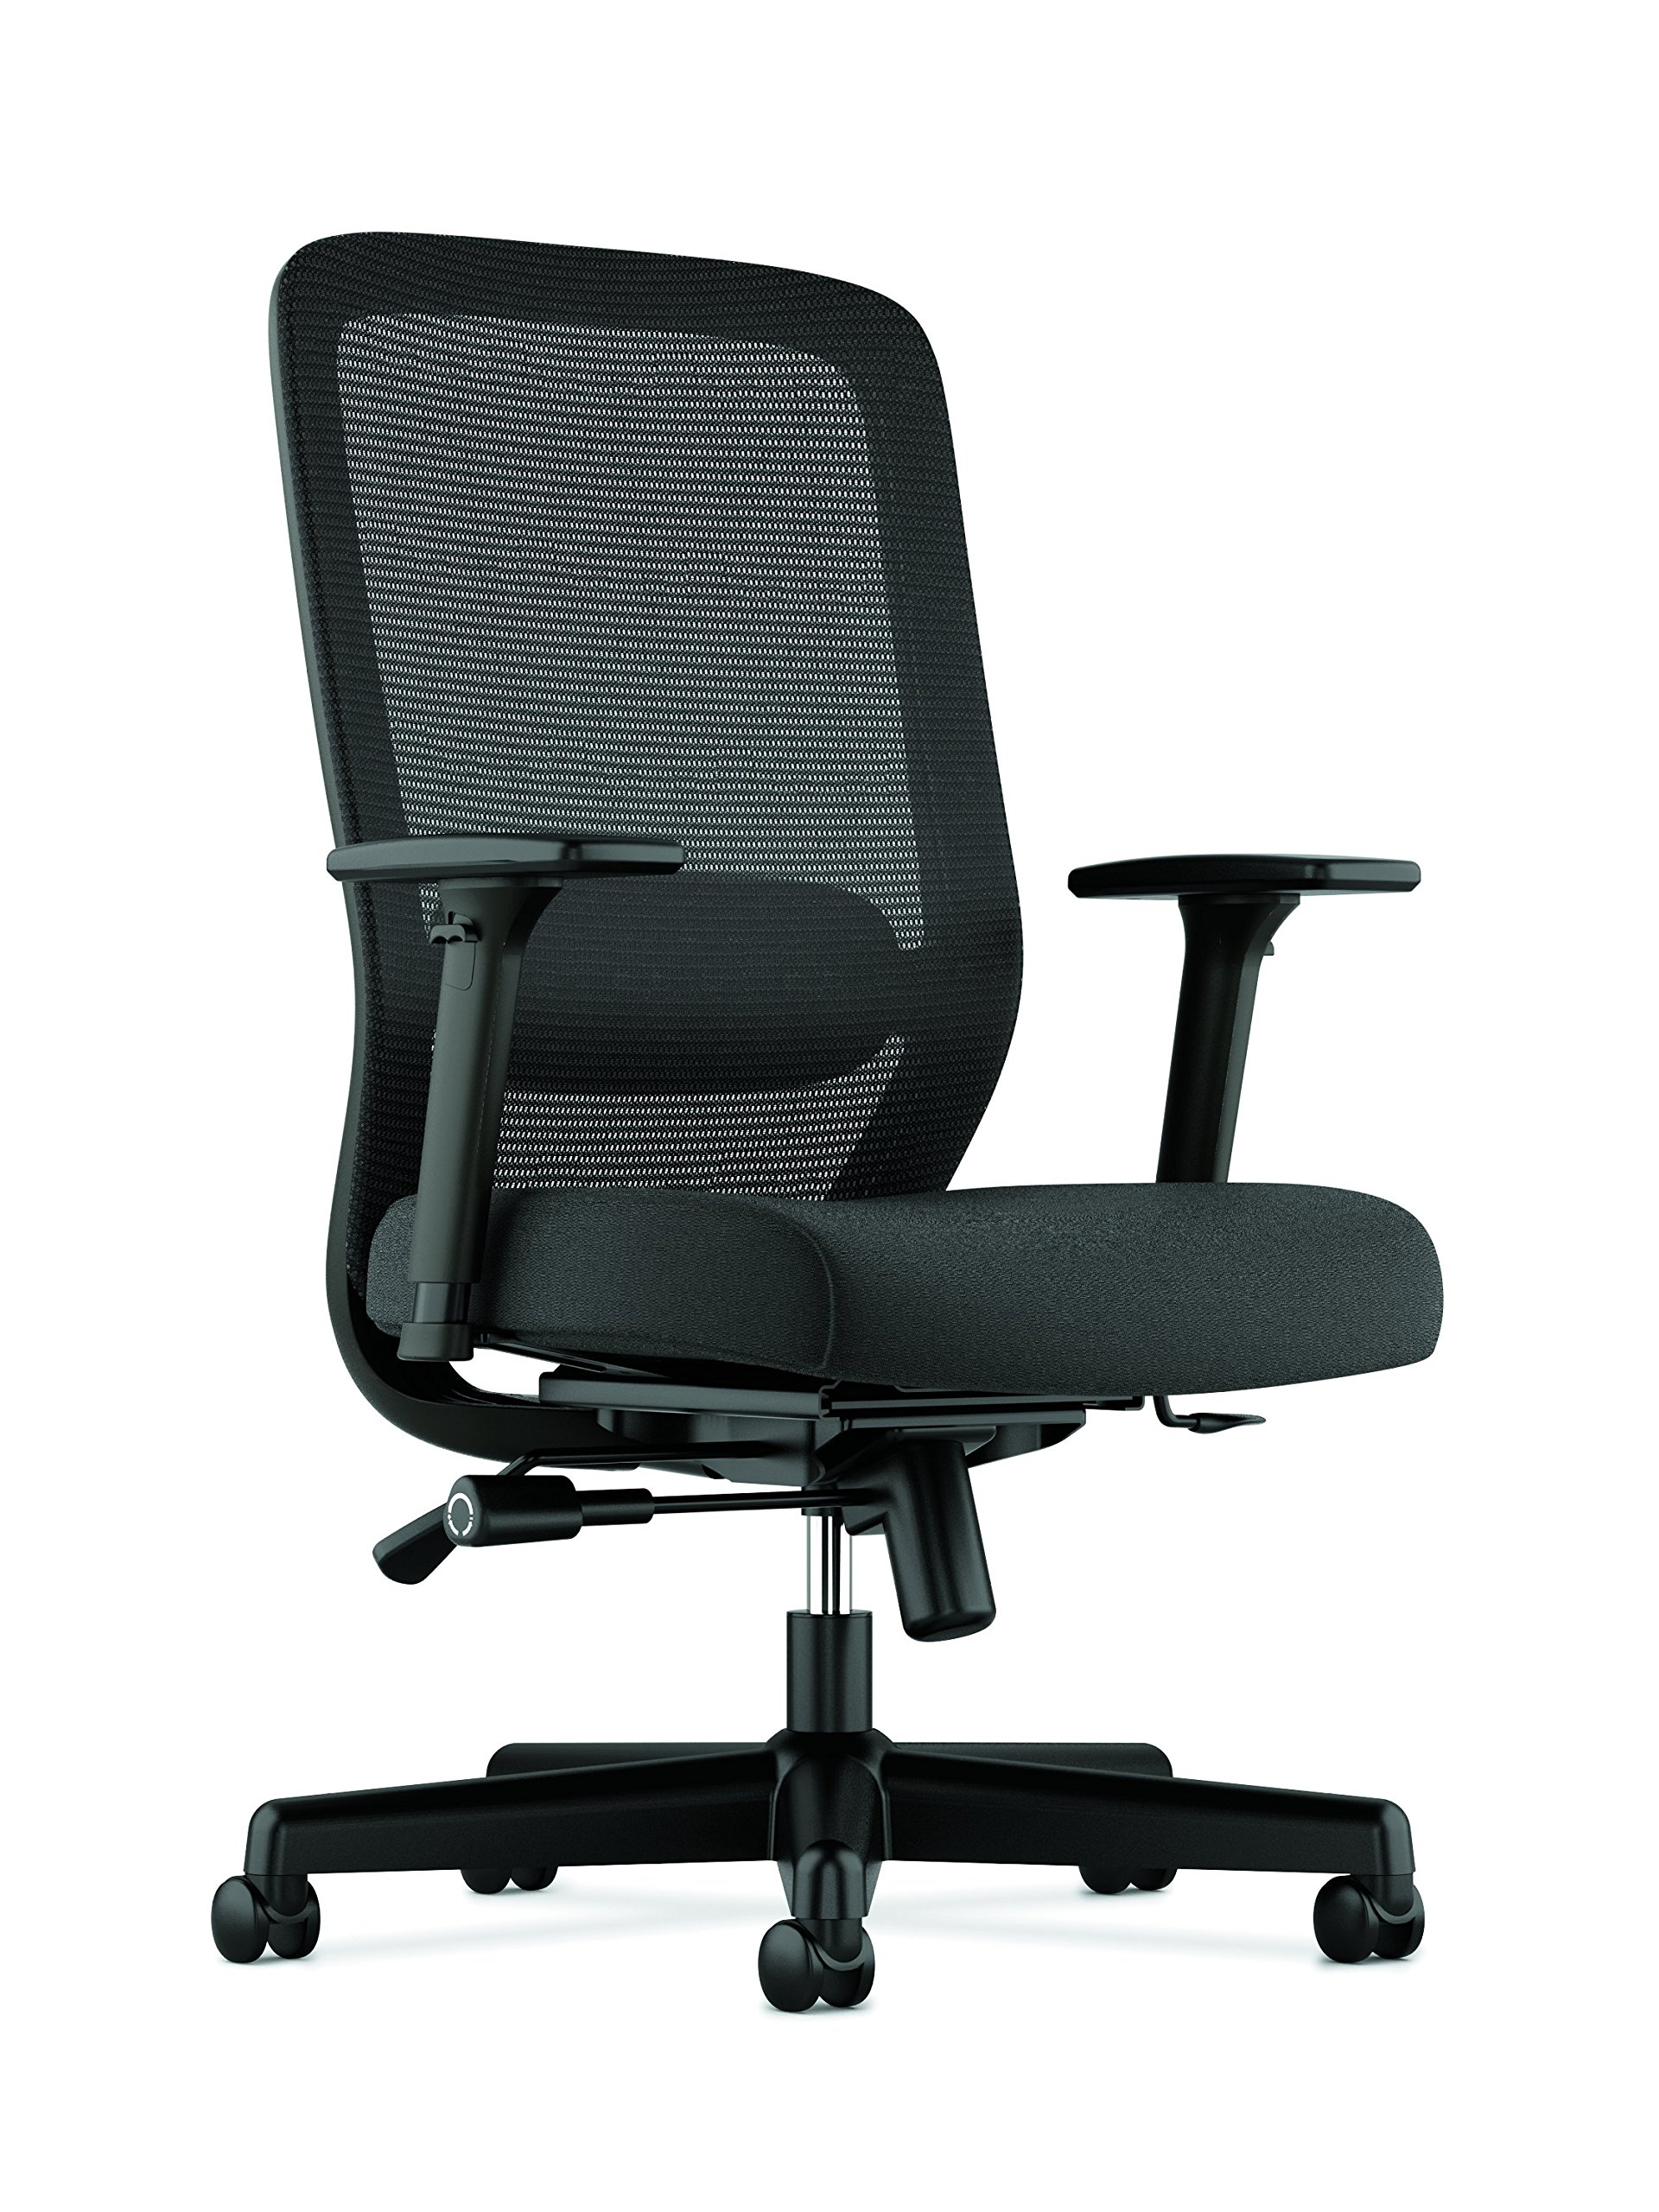 HON BSXVL721LH10 Exposure Mesh Task Chair - Computer Chair with 2-Way Adjustable Arms for Office Desk, Black (HVL721) by HON